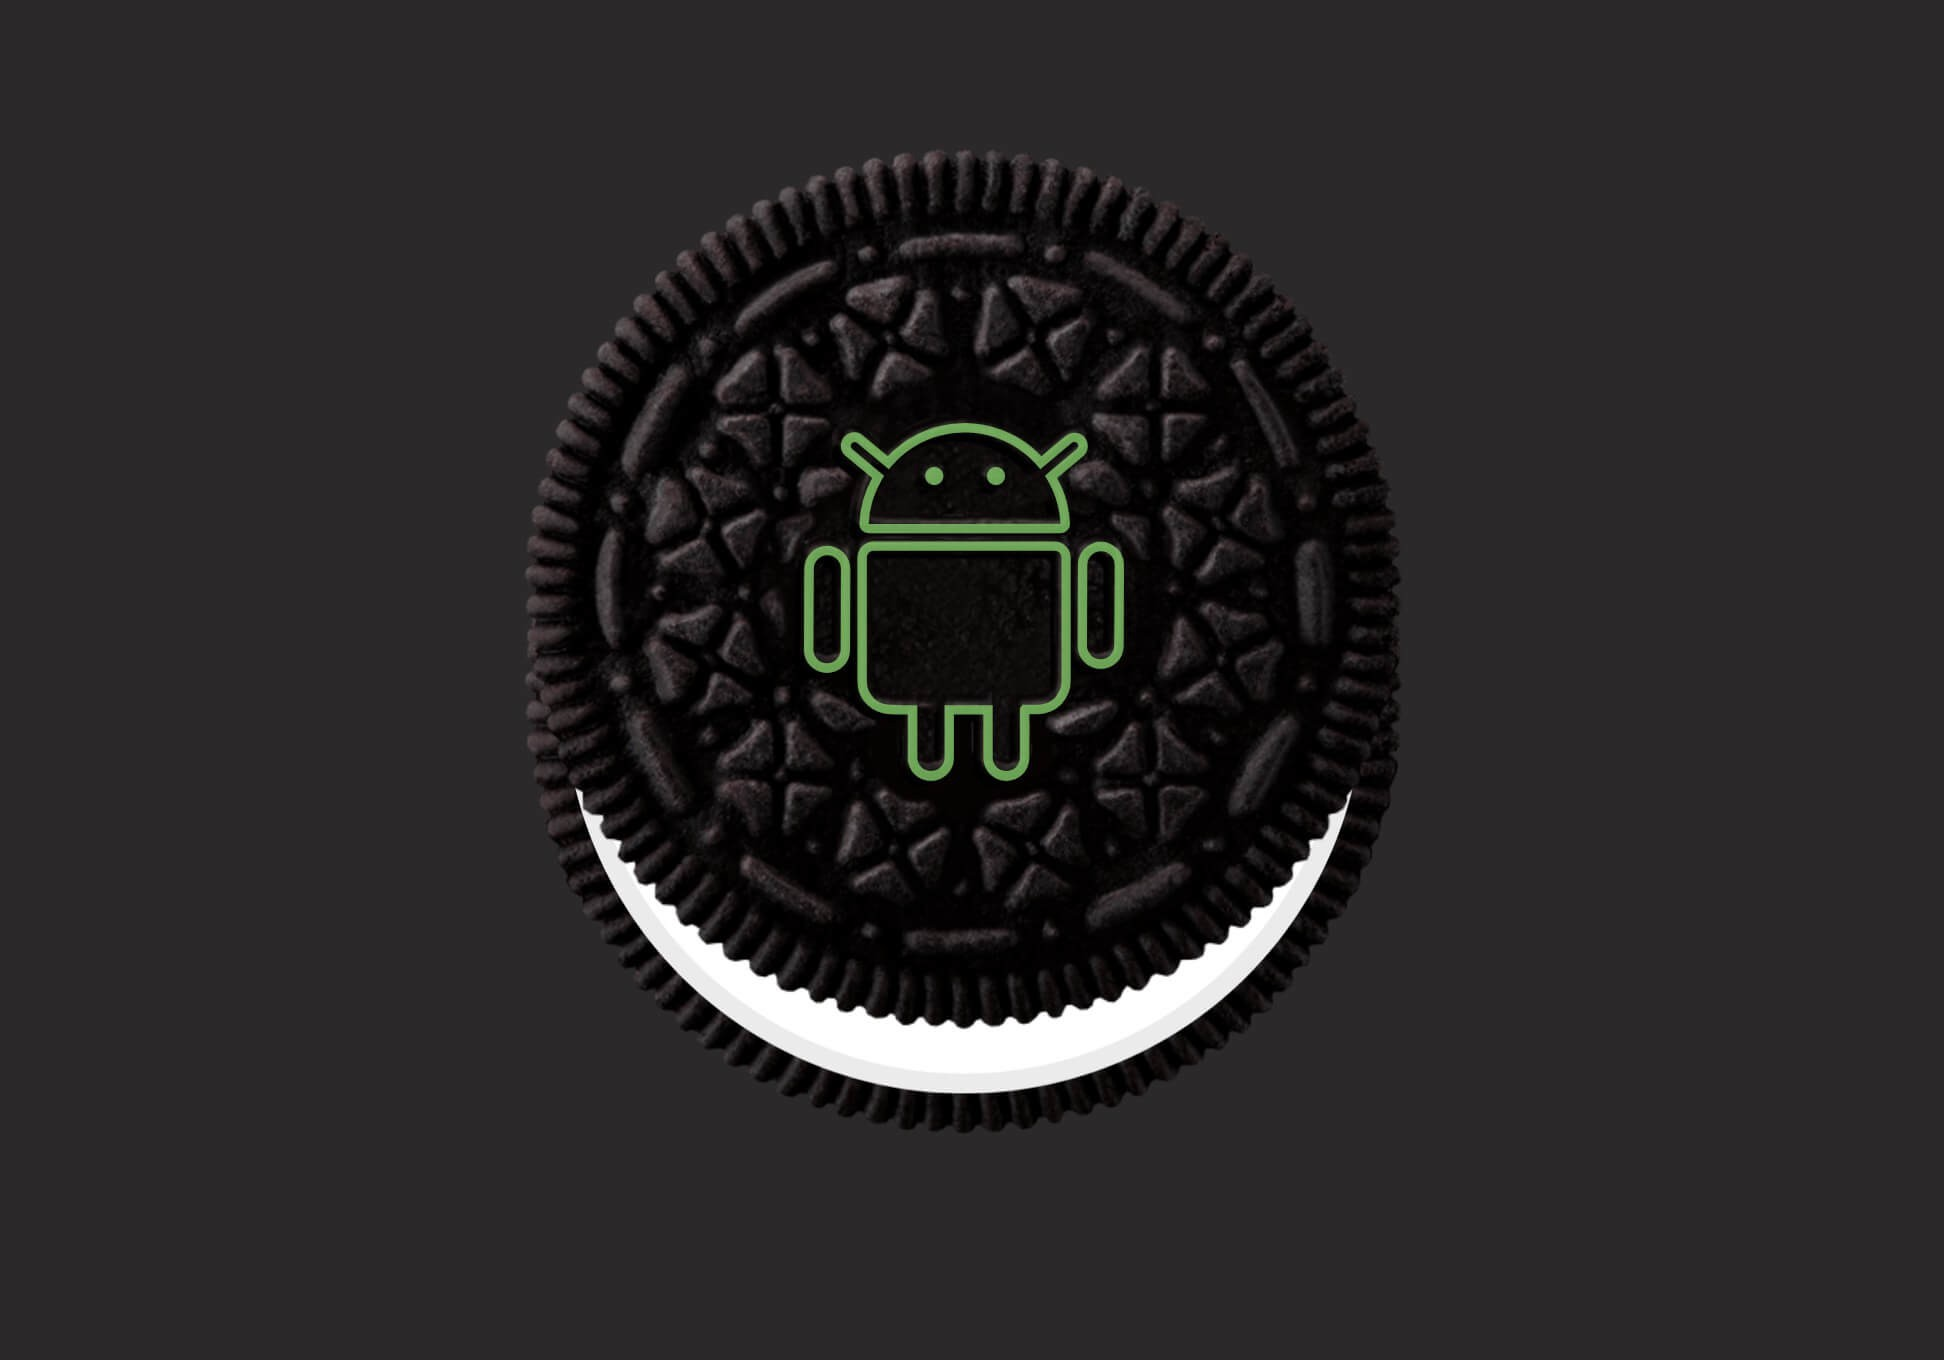 Android Oreo: all you need to know - Uptech